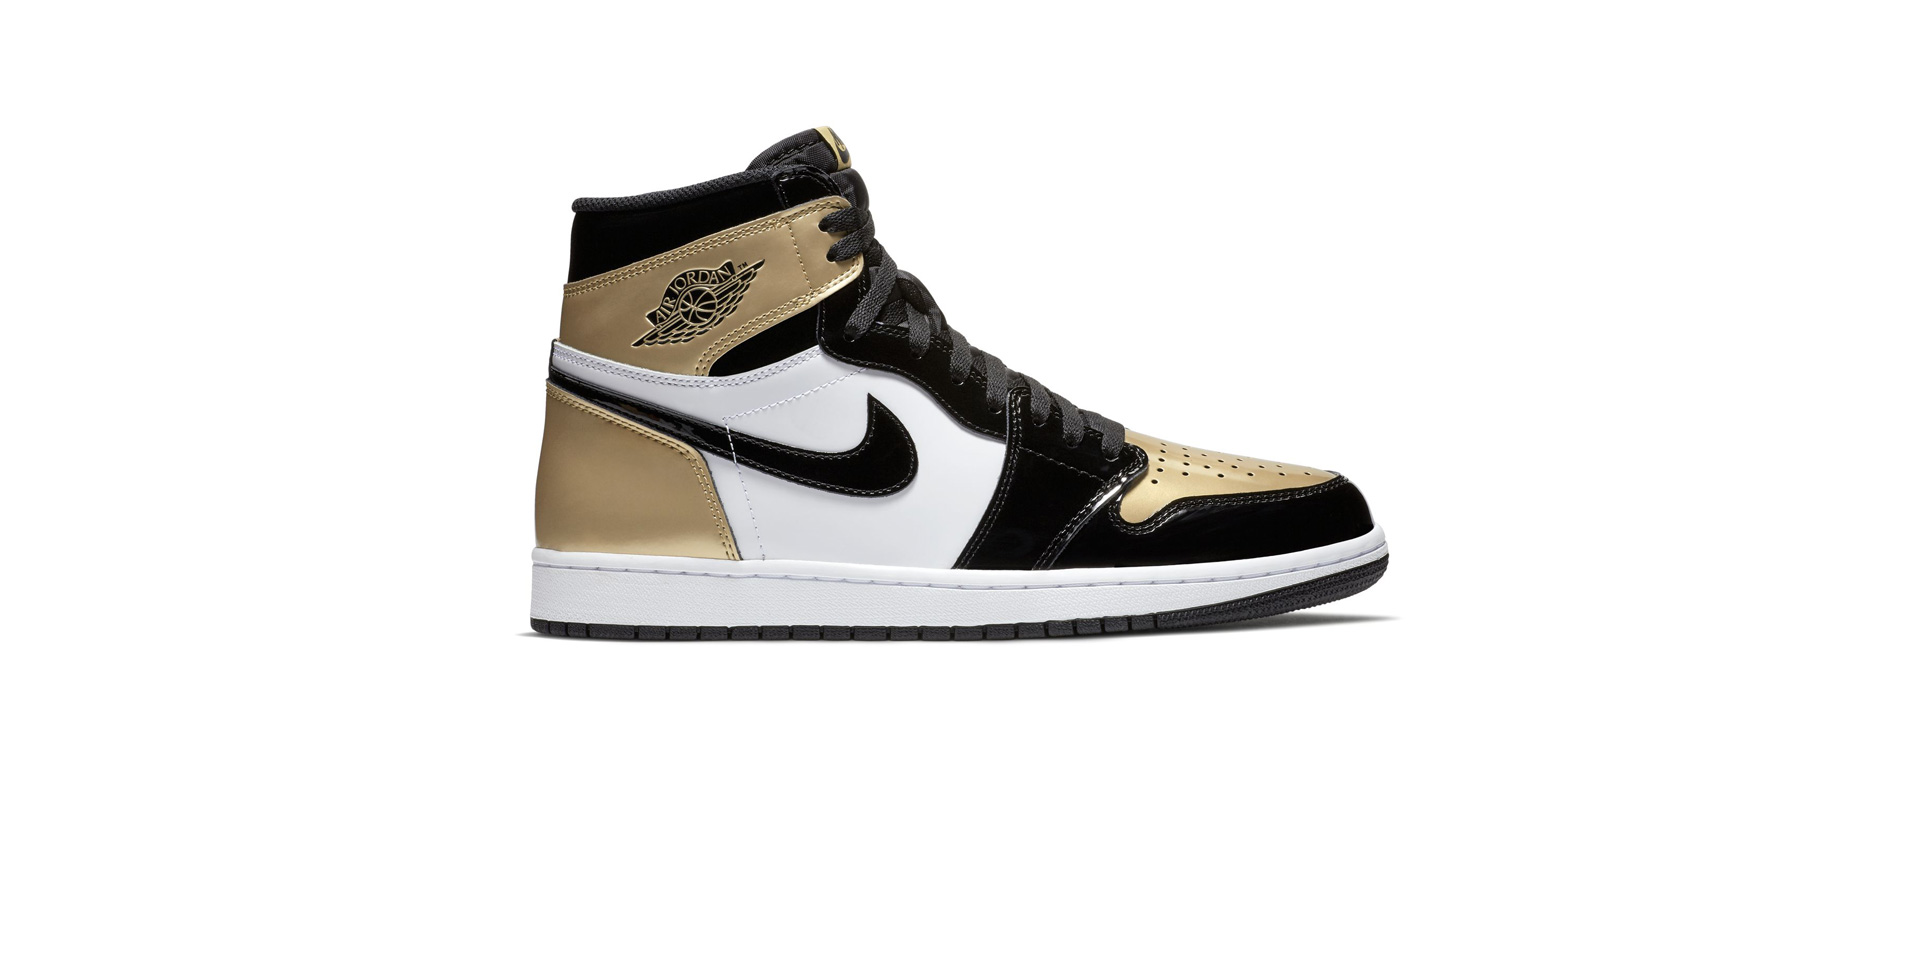 AIR JORDAN 1 RETRO HIGH OG NRG – BLACK/BLACK METALLIC GOLD